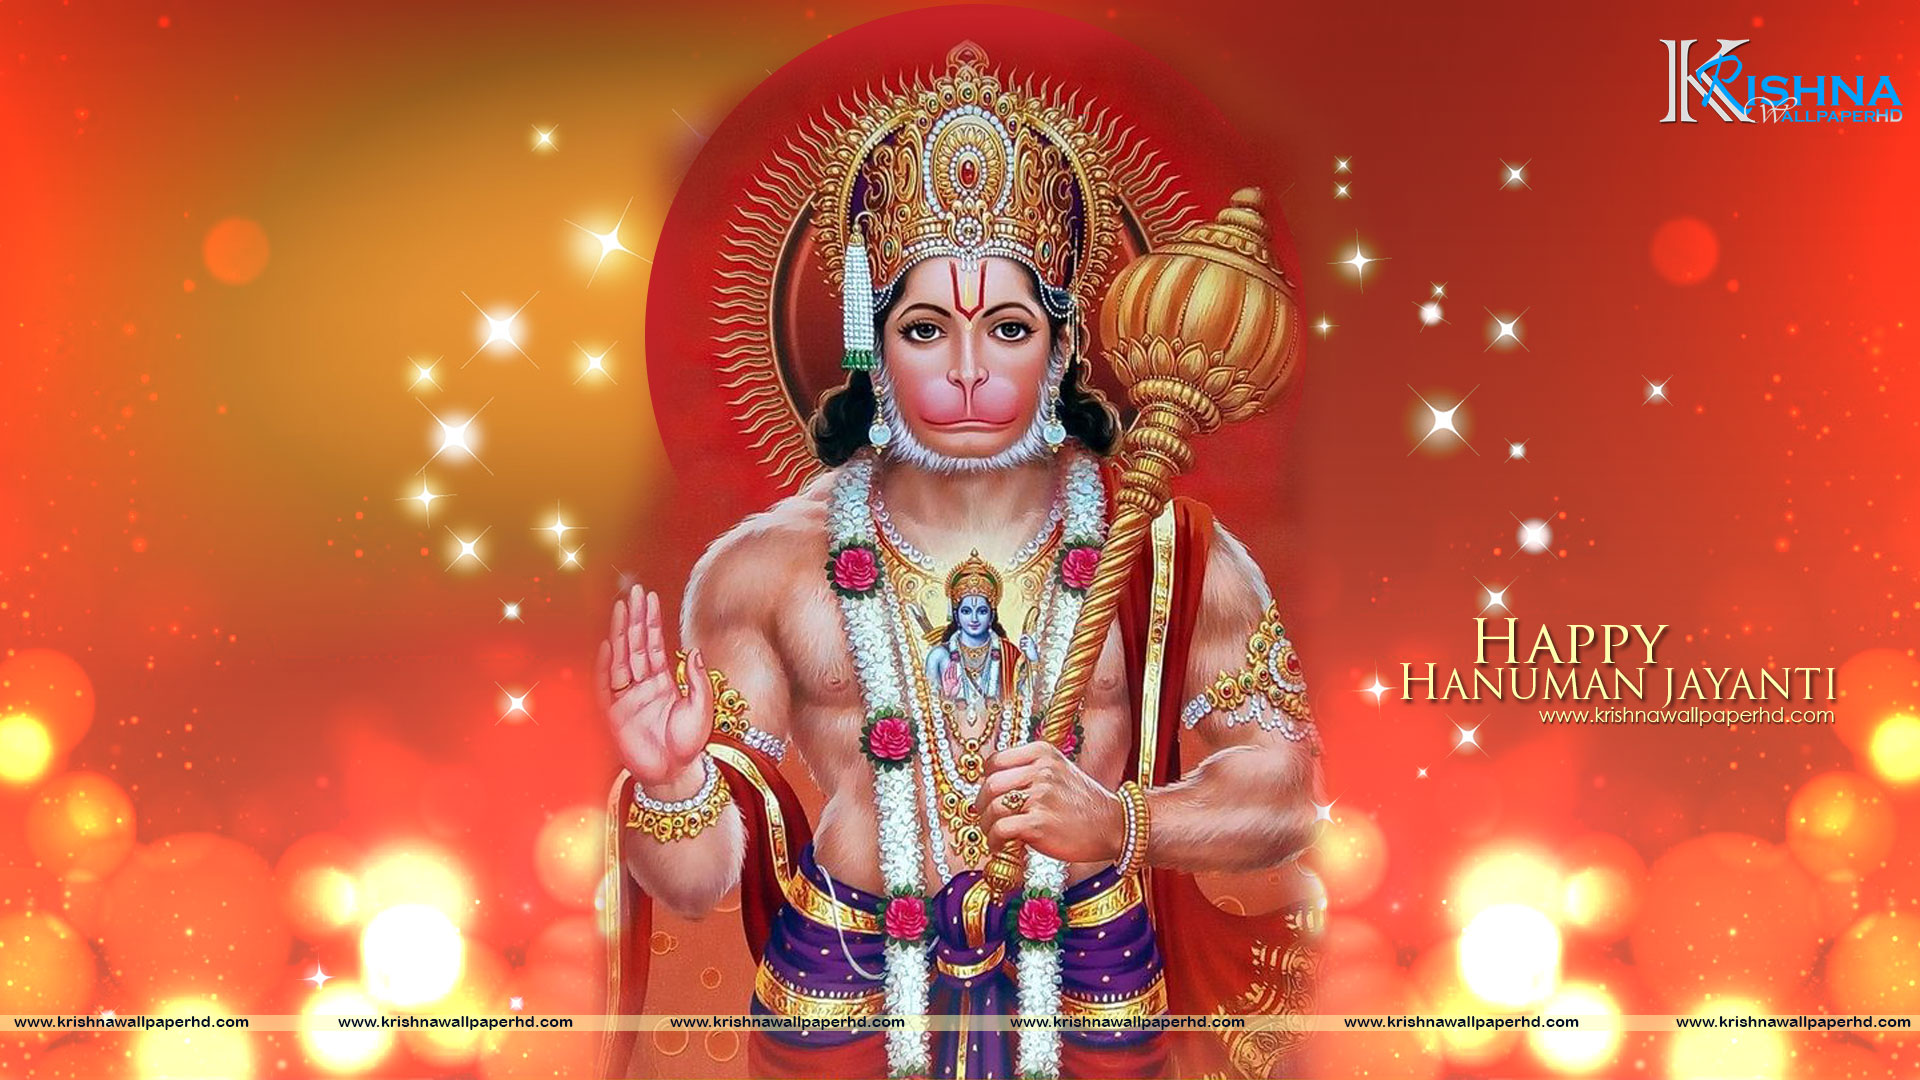 Hanuman Jayanti Hd Wallpaper Krishna Wallpaper Hd Free God Hd Wallpapers Images Pics And Photos